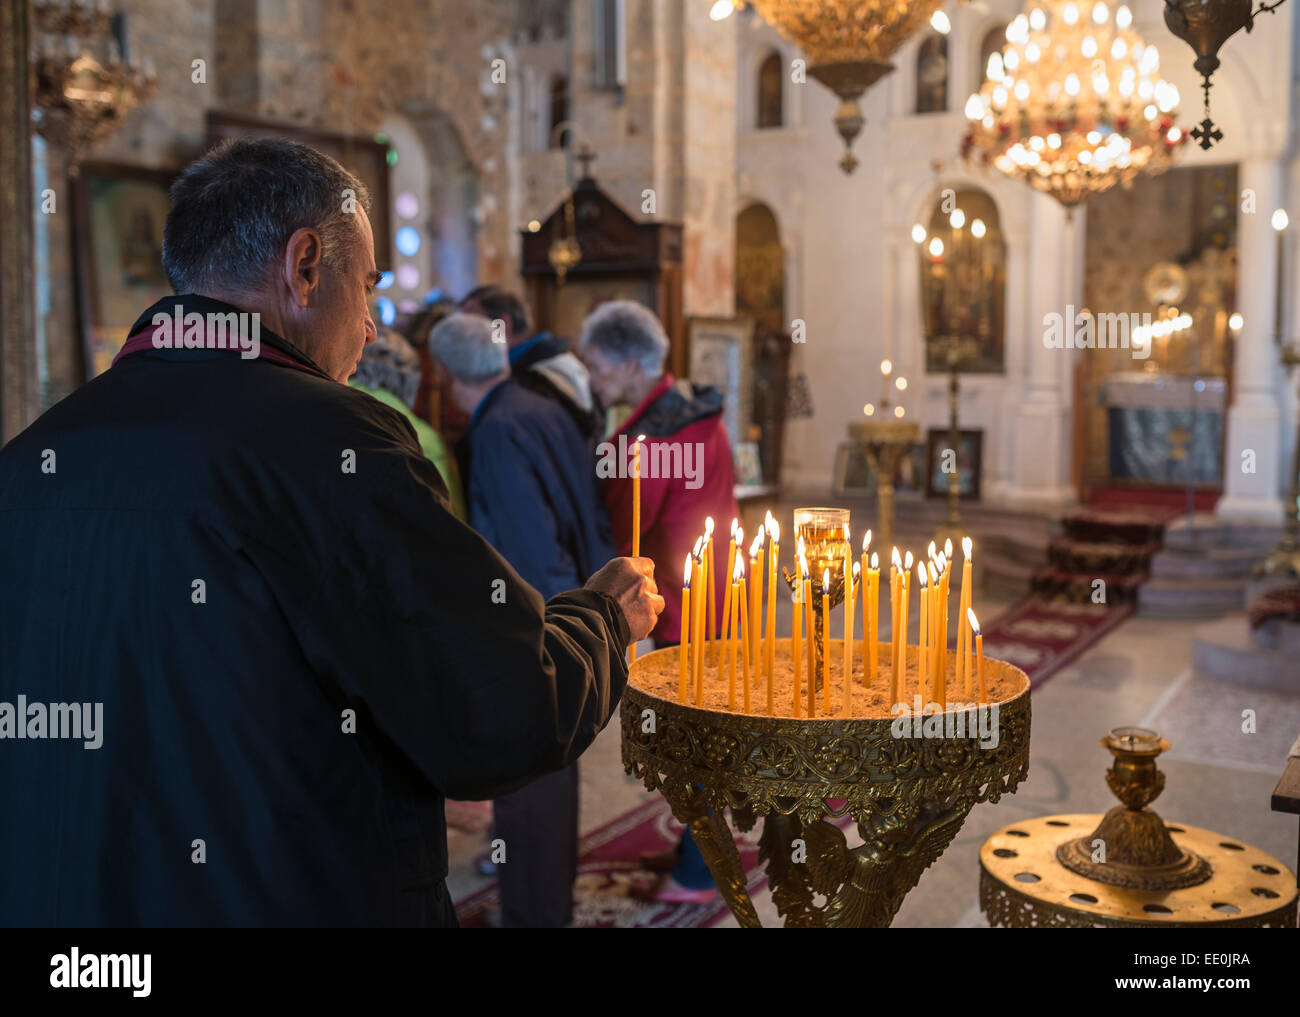 Man lighting a candle in a Greek Orthodox church. In the village of Exohori, Outer Man, Peloponnese, Greece. - Stock Image